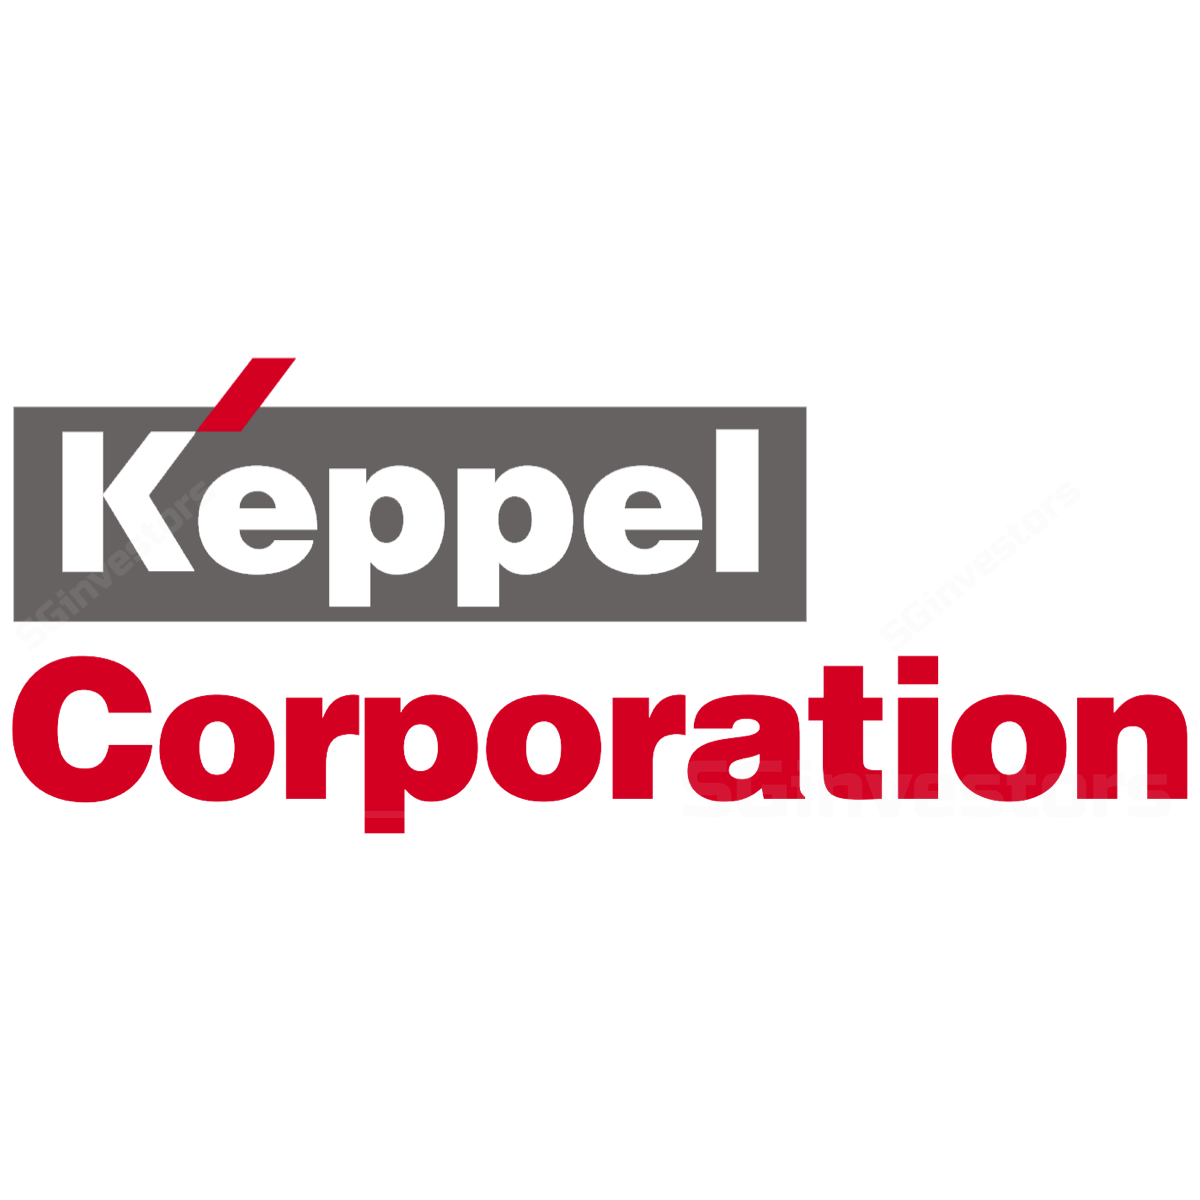 Keppel Corporation - CIMB Research 2017-03-21: Scooped by Borr Drilling